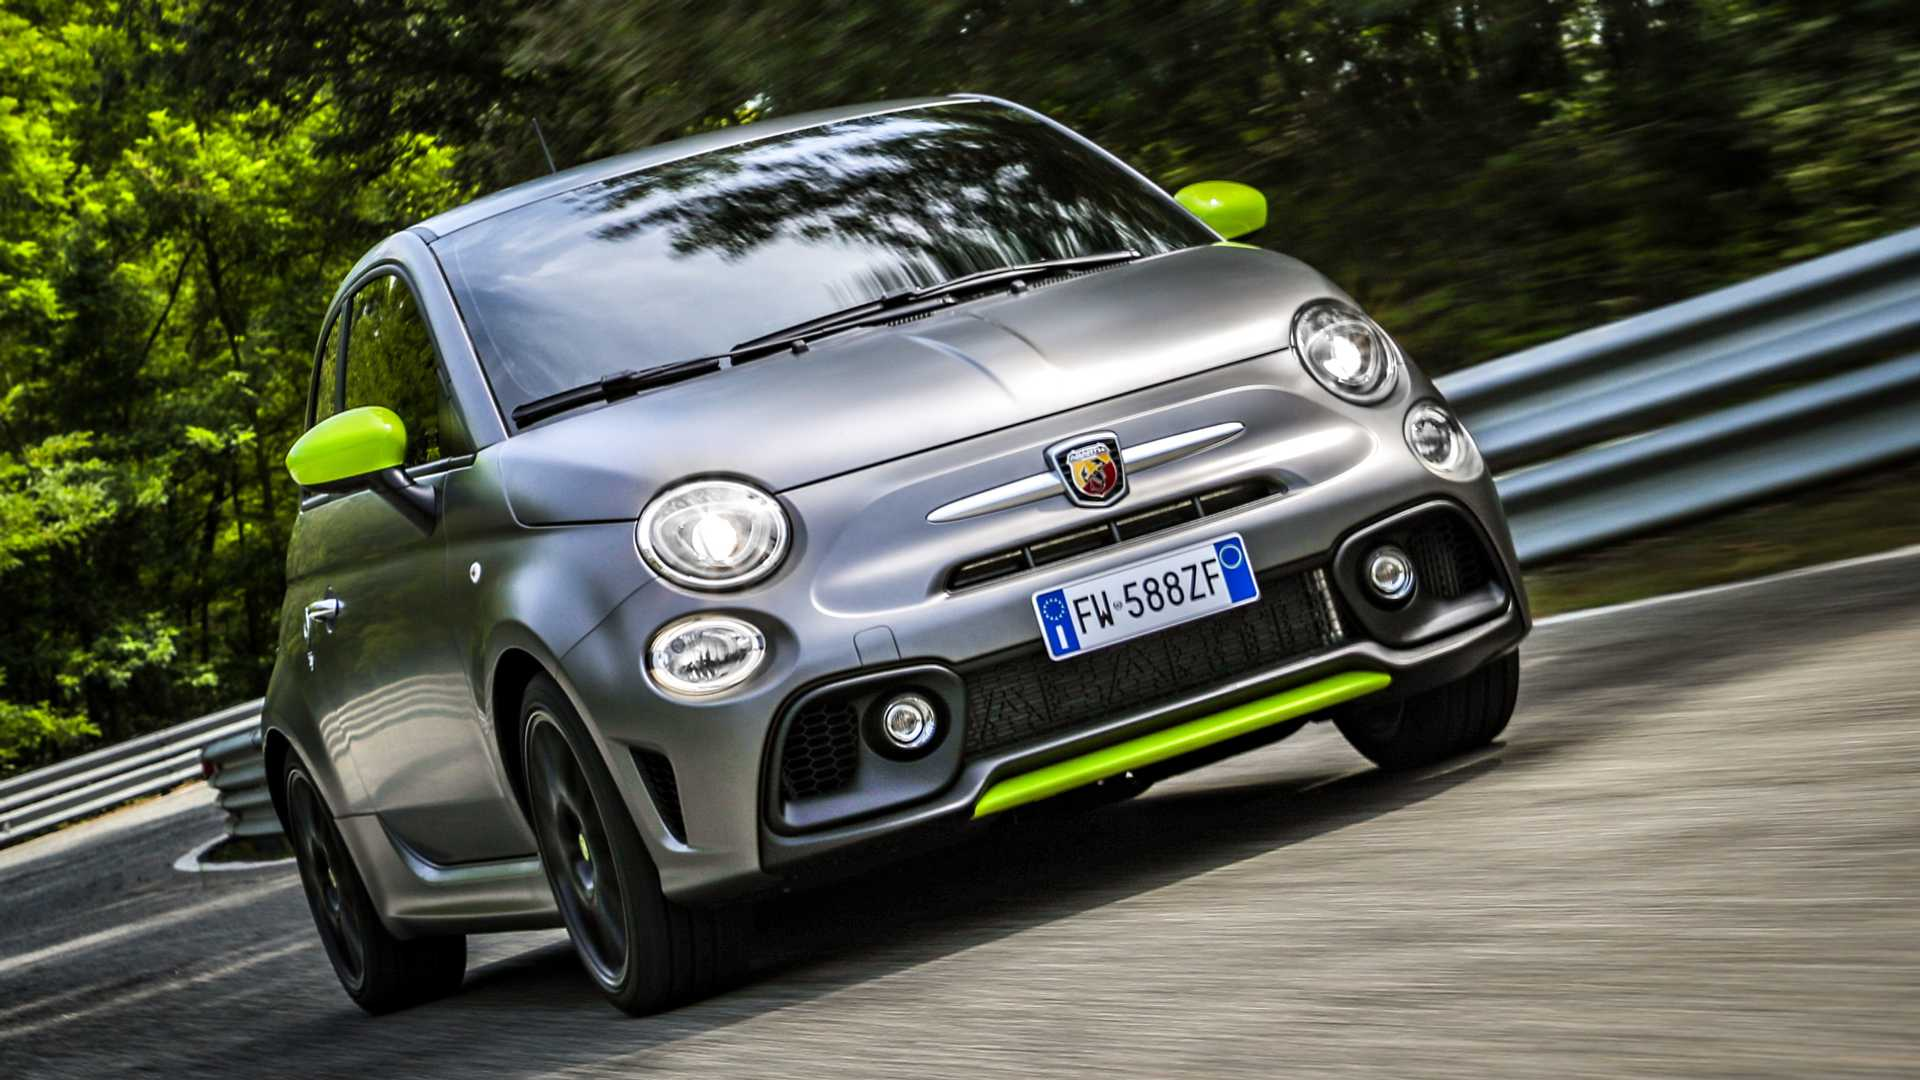 Abarth 595 Pista Has 'Oversized' Turbo For 165 HP